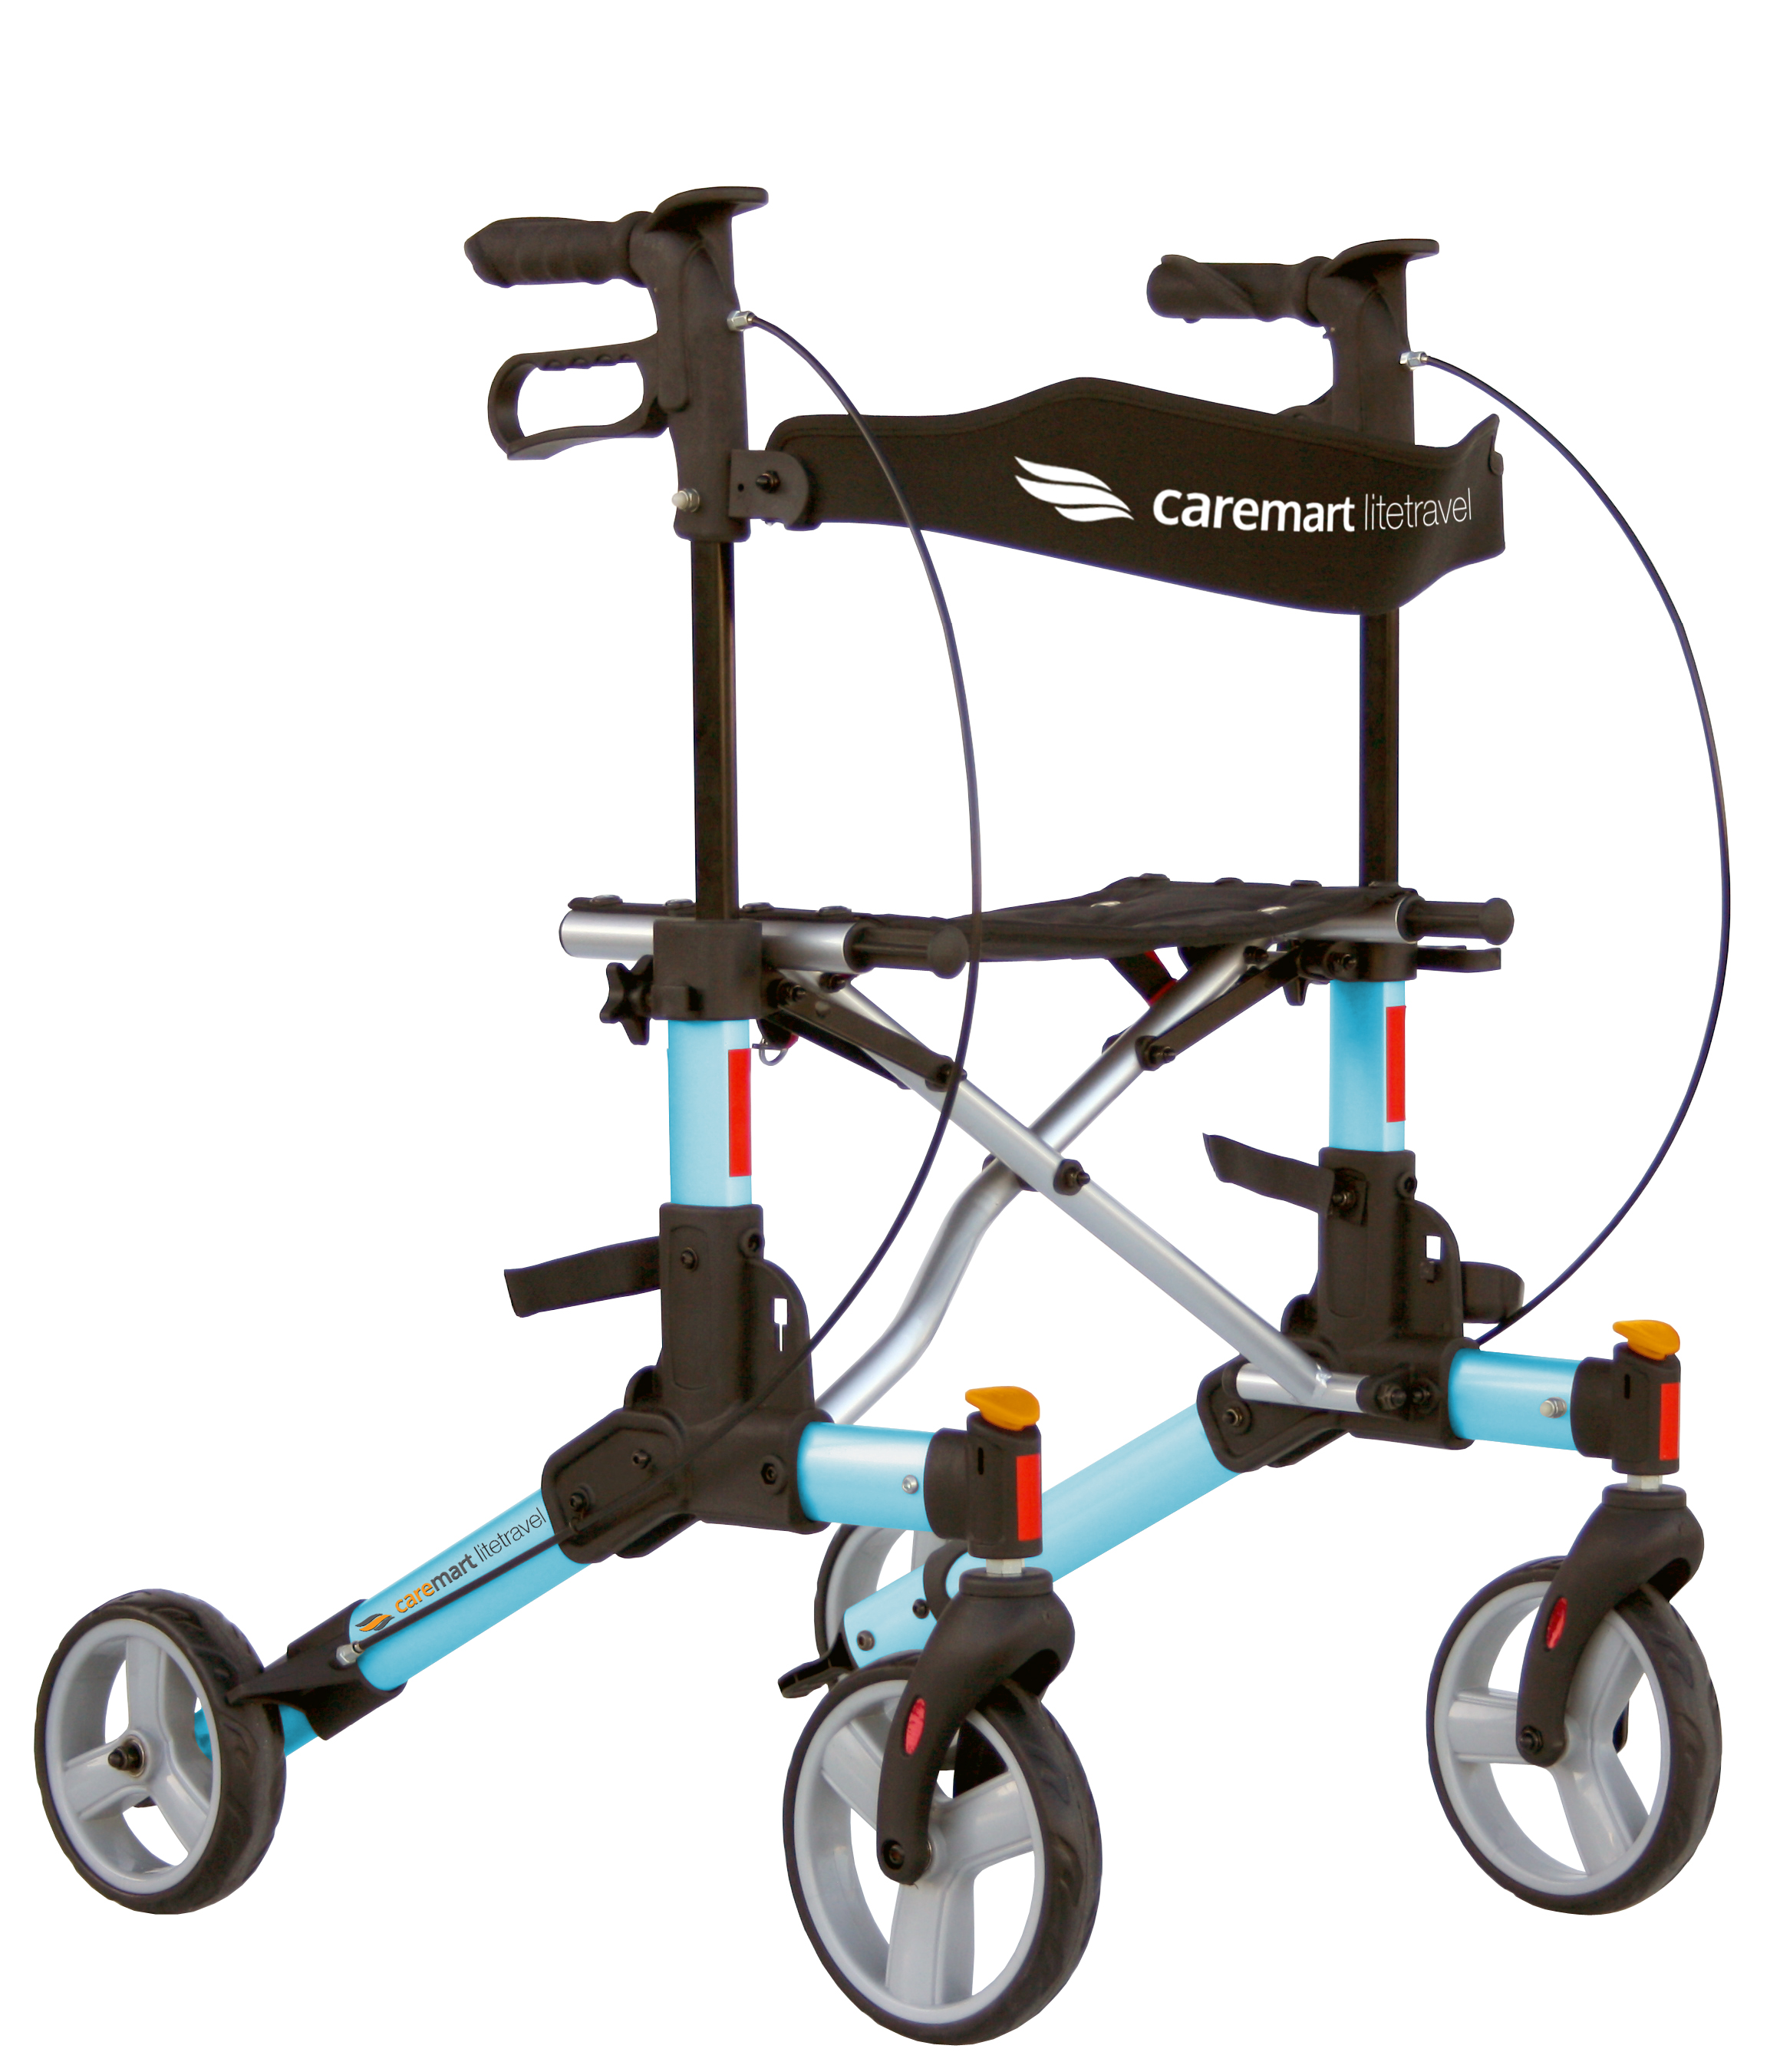 Rollator Caremart Litetravel Kite Blue